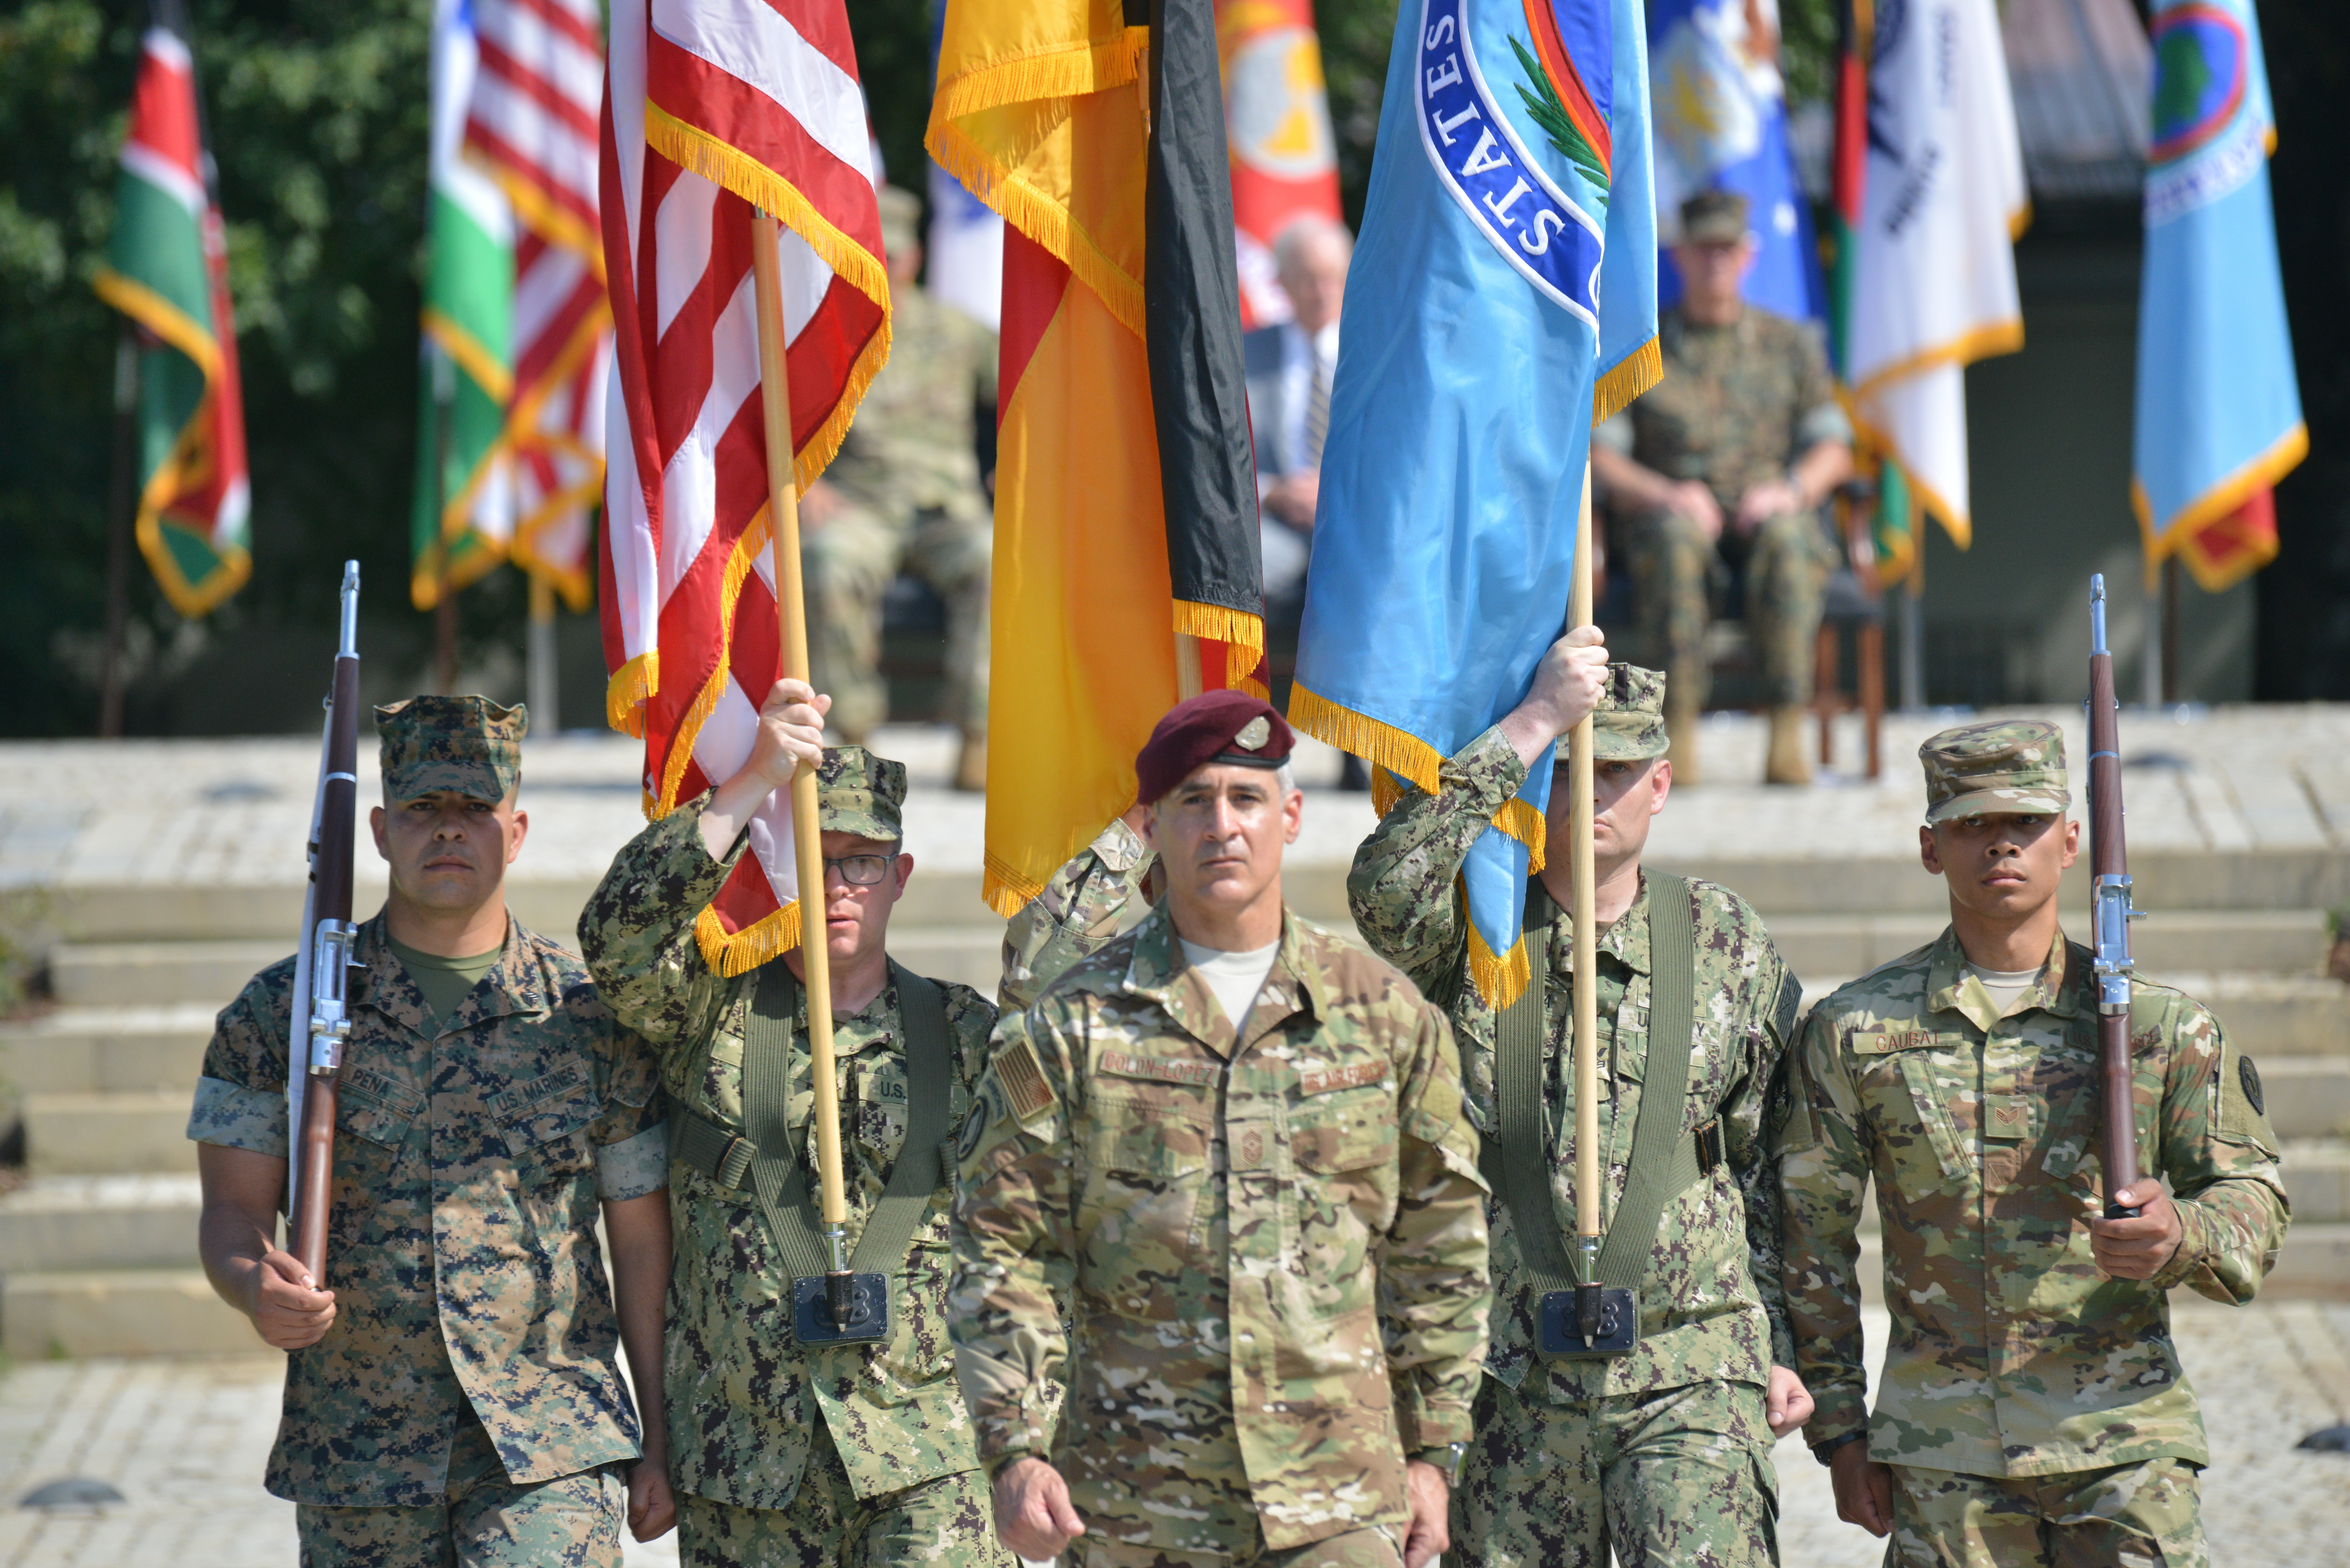 Air Force Chief Master Sgt. Ramon Colon-Lopez, command senior enlisted leader for U.S. Africa Command, leads a a joint color guard during the AFRICOM change of command at Patch Barracks in Stuttgart, Germany, July 26, 2019. AFRICOM is one of six of the U.S. Defense Department's geographic unified commands and is responsible to the Secretary of Defense for military relations with African nations, the African Union, and African regional security organizations. (U.S. Marine photo by Gunnery Sgt. Christian LeBlanc/Released)